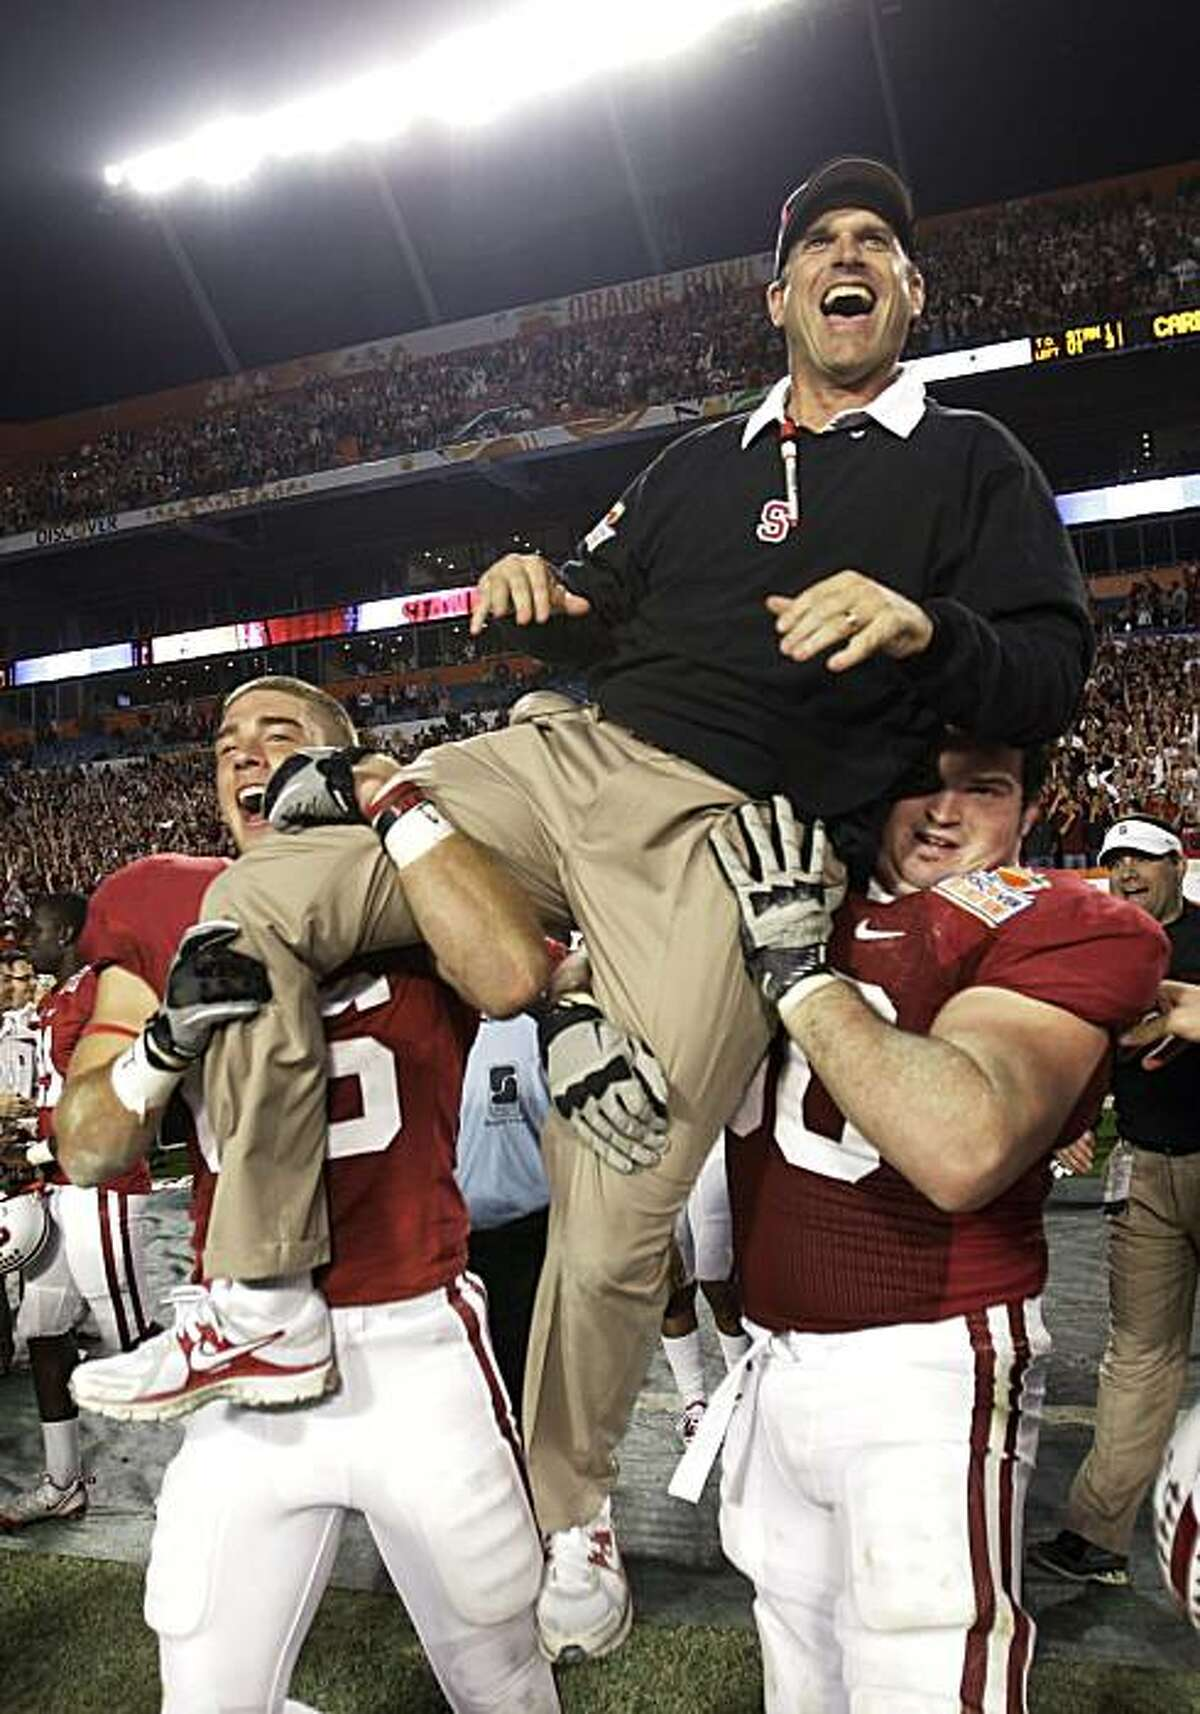 Stanford coach Jim Harbaugh is lifted by players after Stanford's 40-12 victory over Virginia Tech in the Orange Bowl NCAA college football game, Monday, Jan. 3, 2011, in Miami.